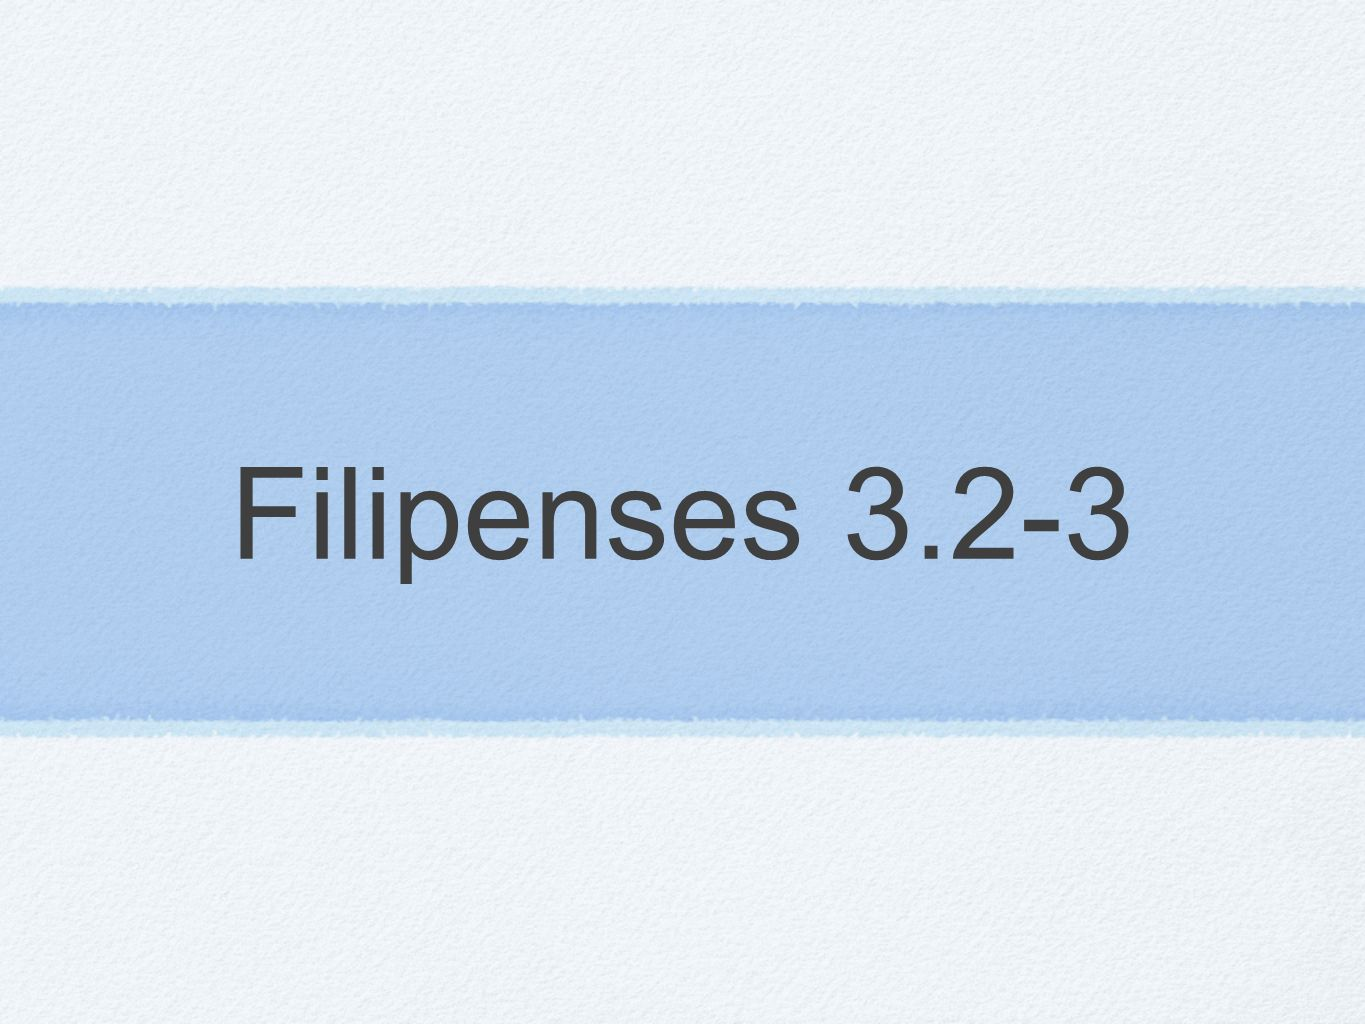 Filipenses 3.2-3